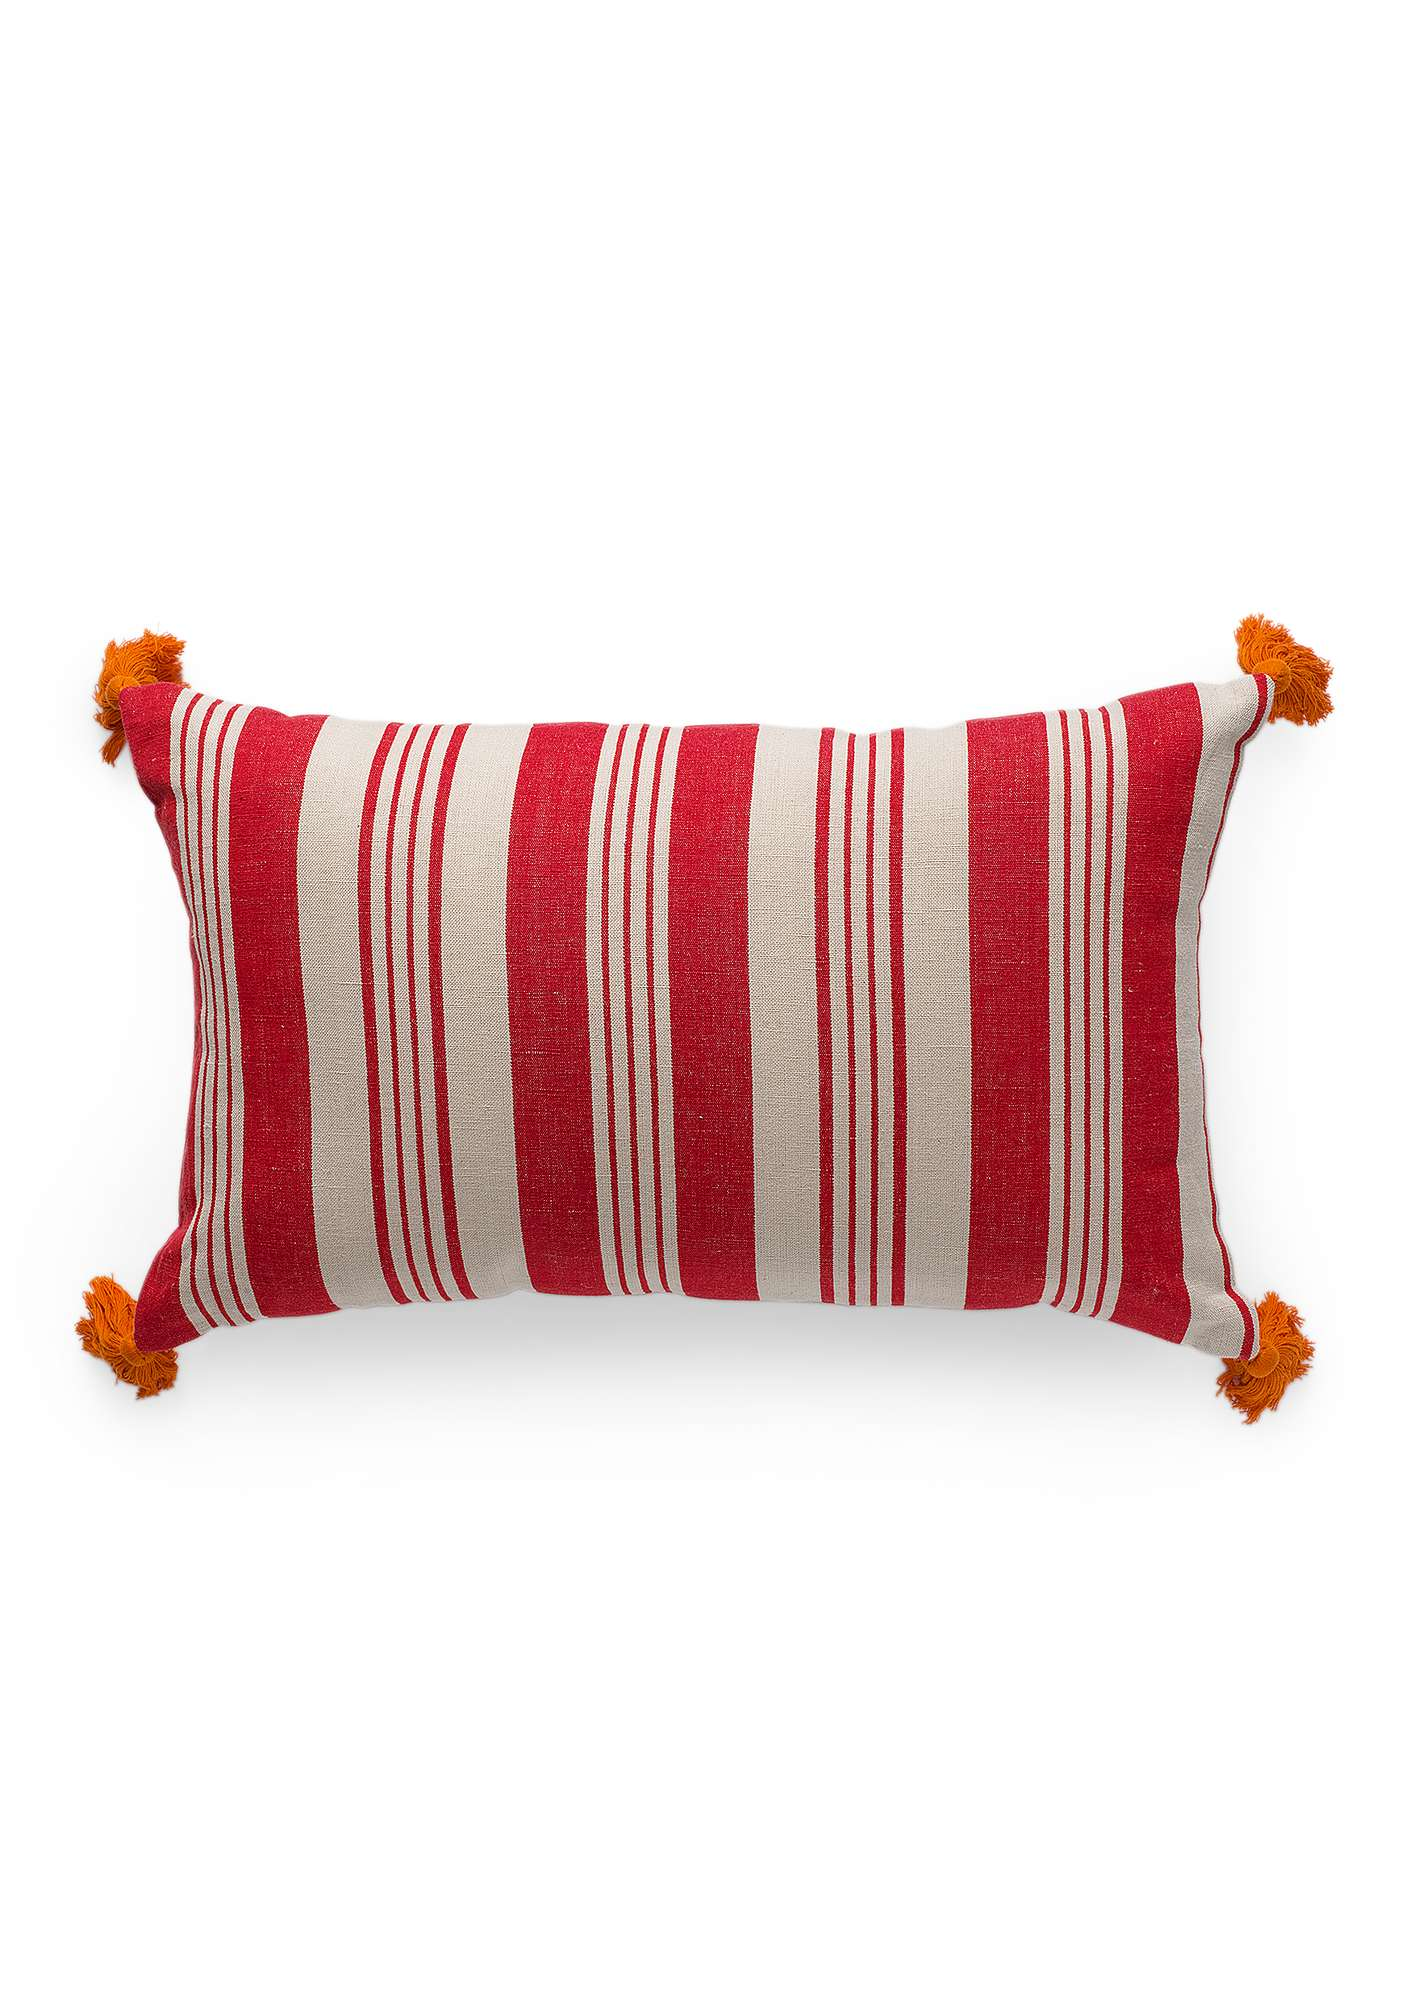 Bolster cushion bright red